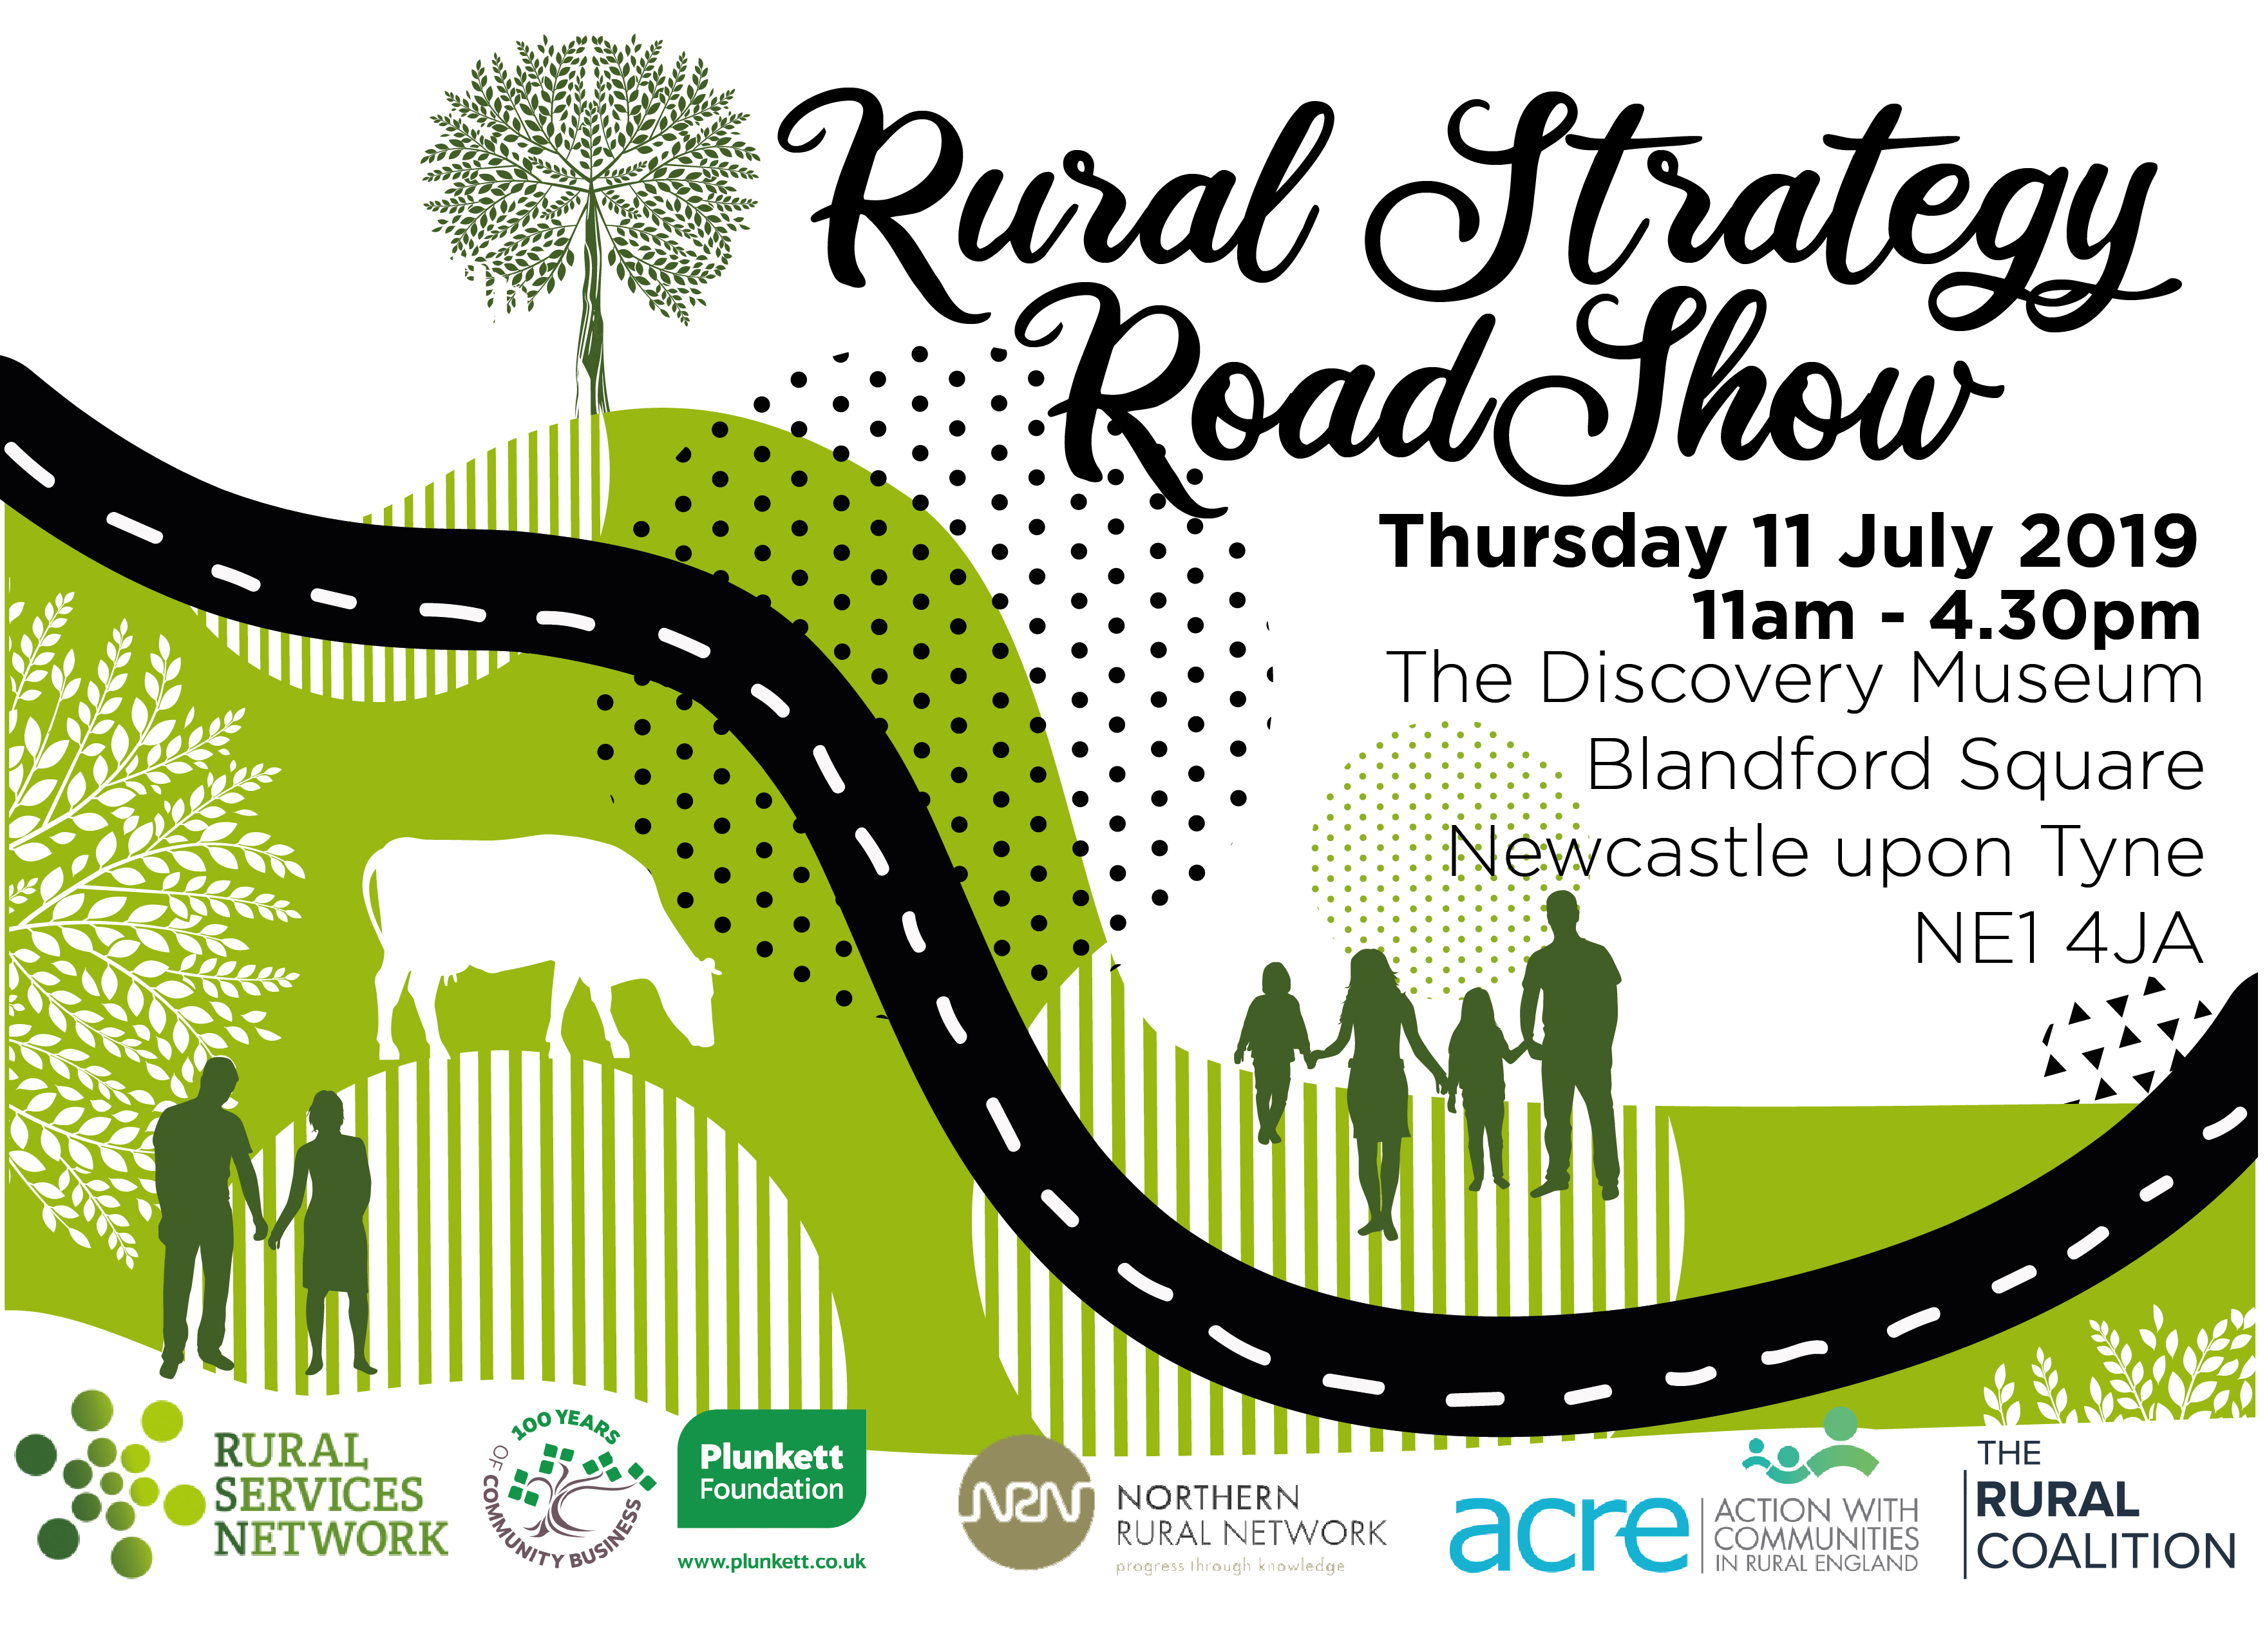 IT'S TIME FOR A RURAL STRATEGY:  A NATIONAL FRAMEWORK WITH LOCAL DELIVERY – NEWCASTLE REGIONAL ROADSHOW